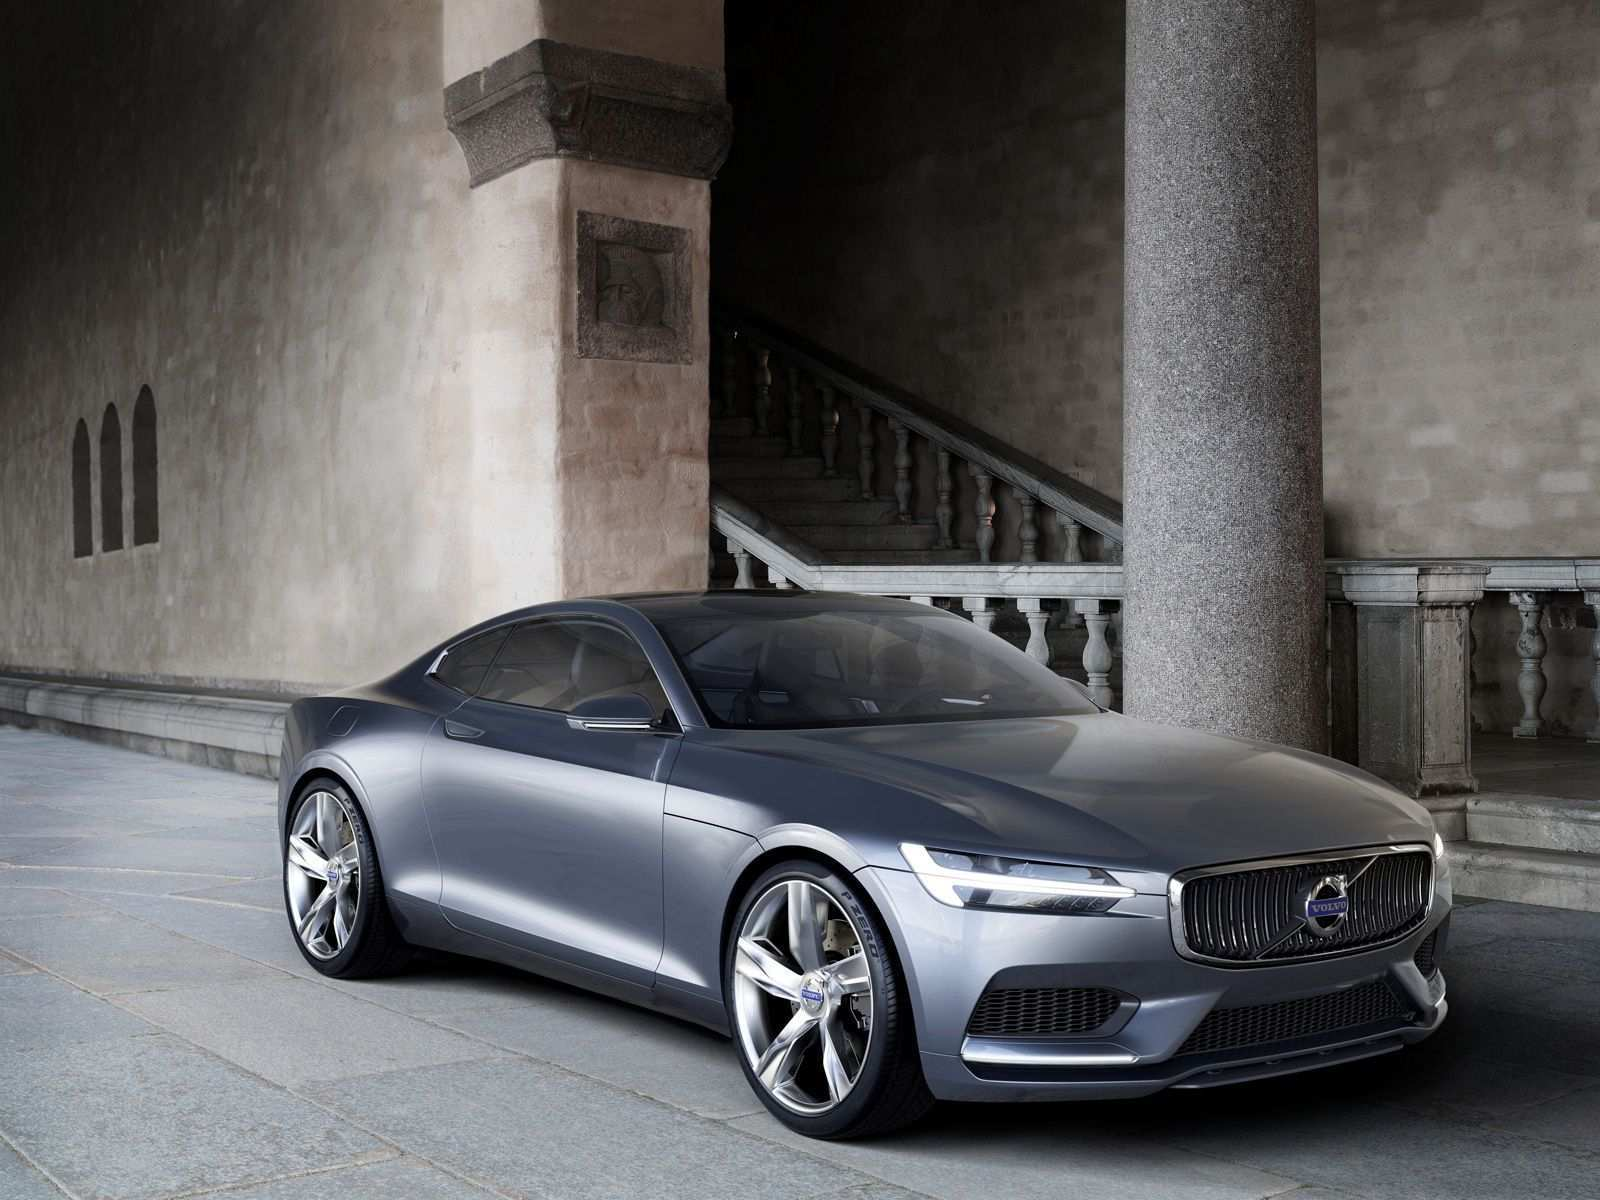 53 Concept of Volvo V90 2020 Wallpaper with Volvo V90 2020